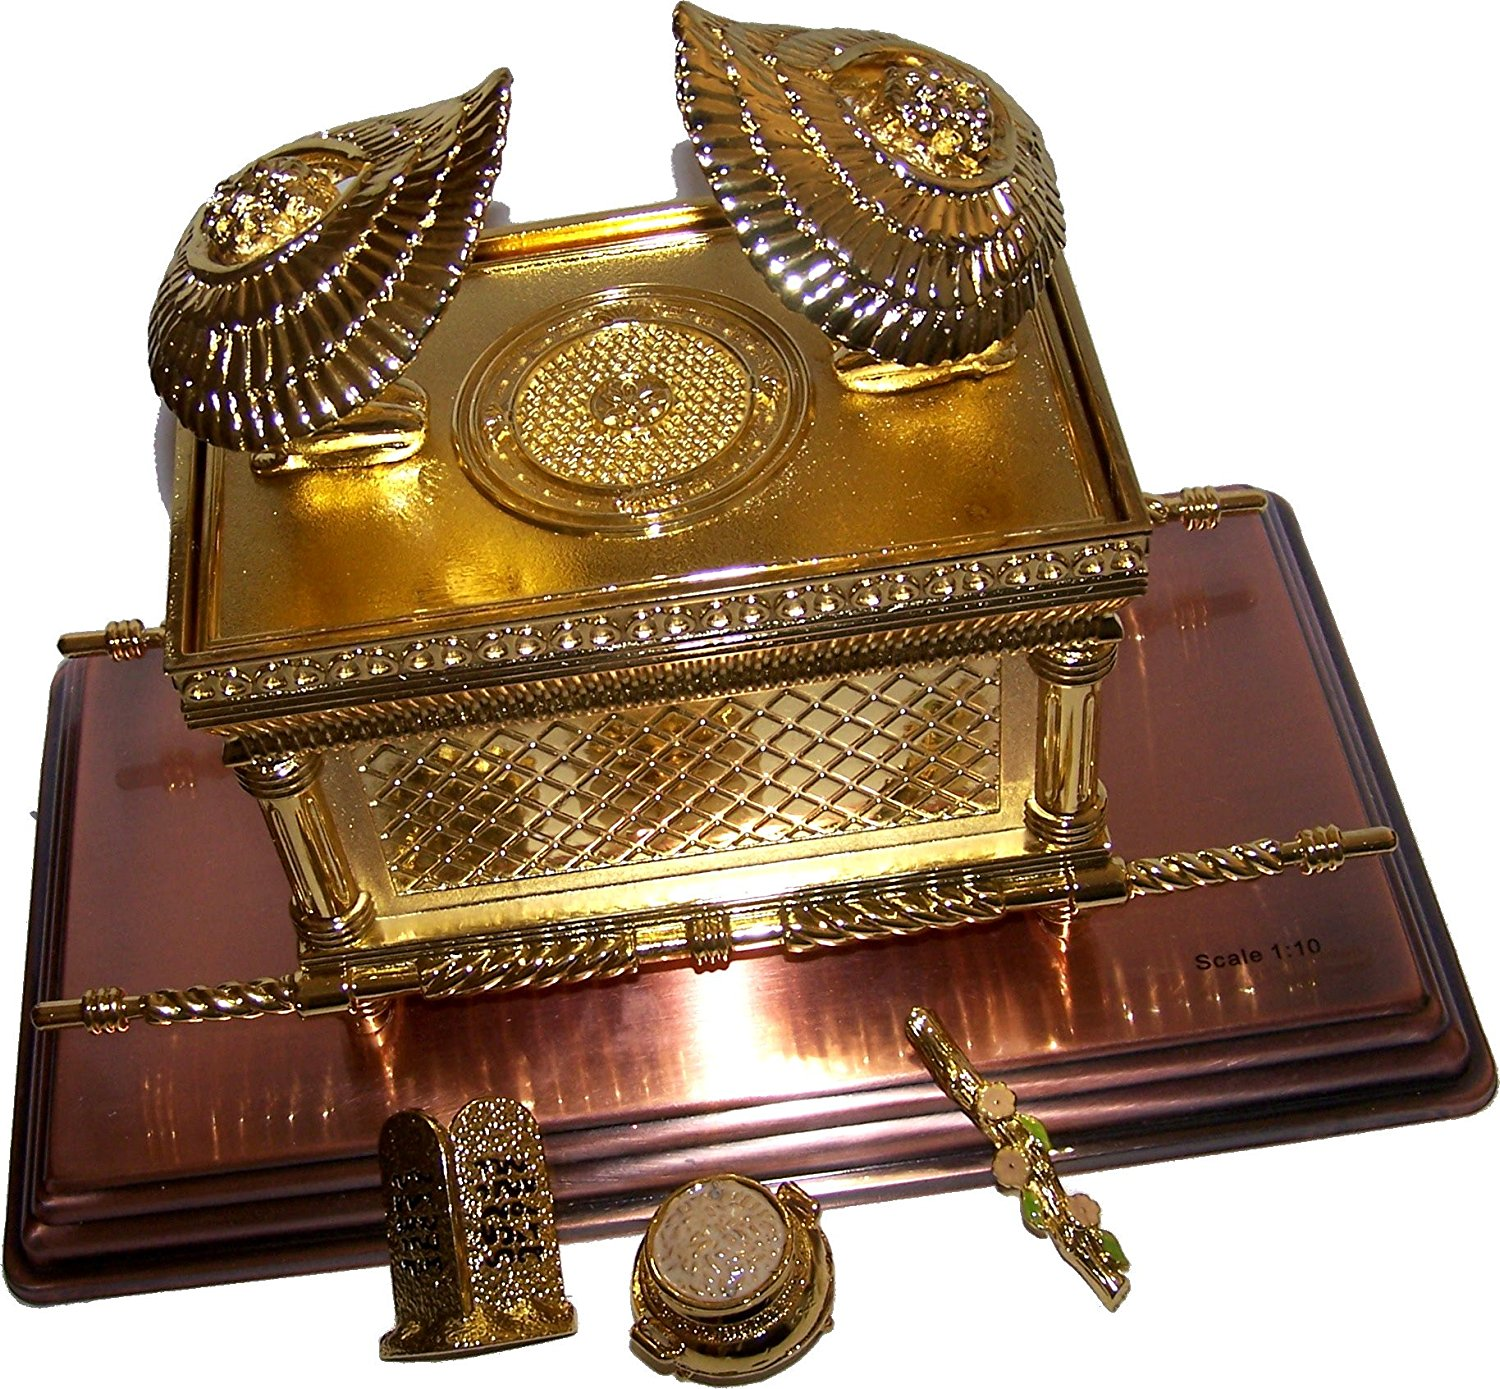 The Ark Of The Covenant Gold Plated with Ark Contents replica ( Aaron Rod, Tablets and Manna )